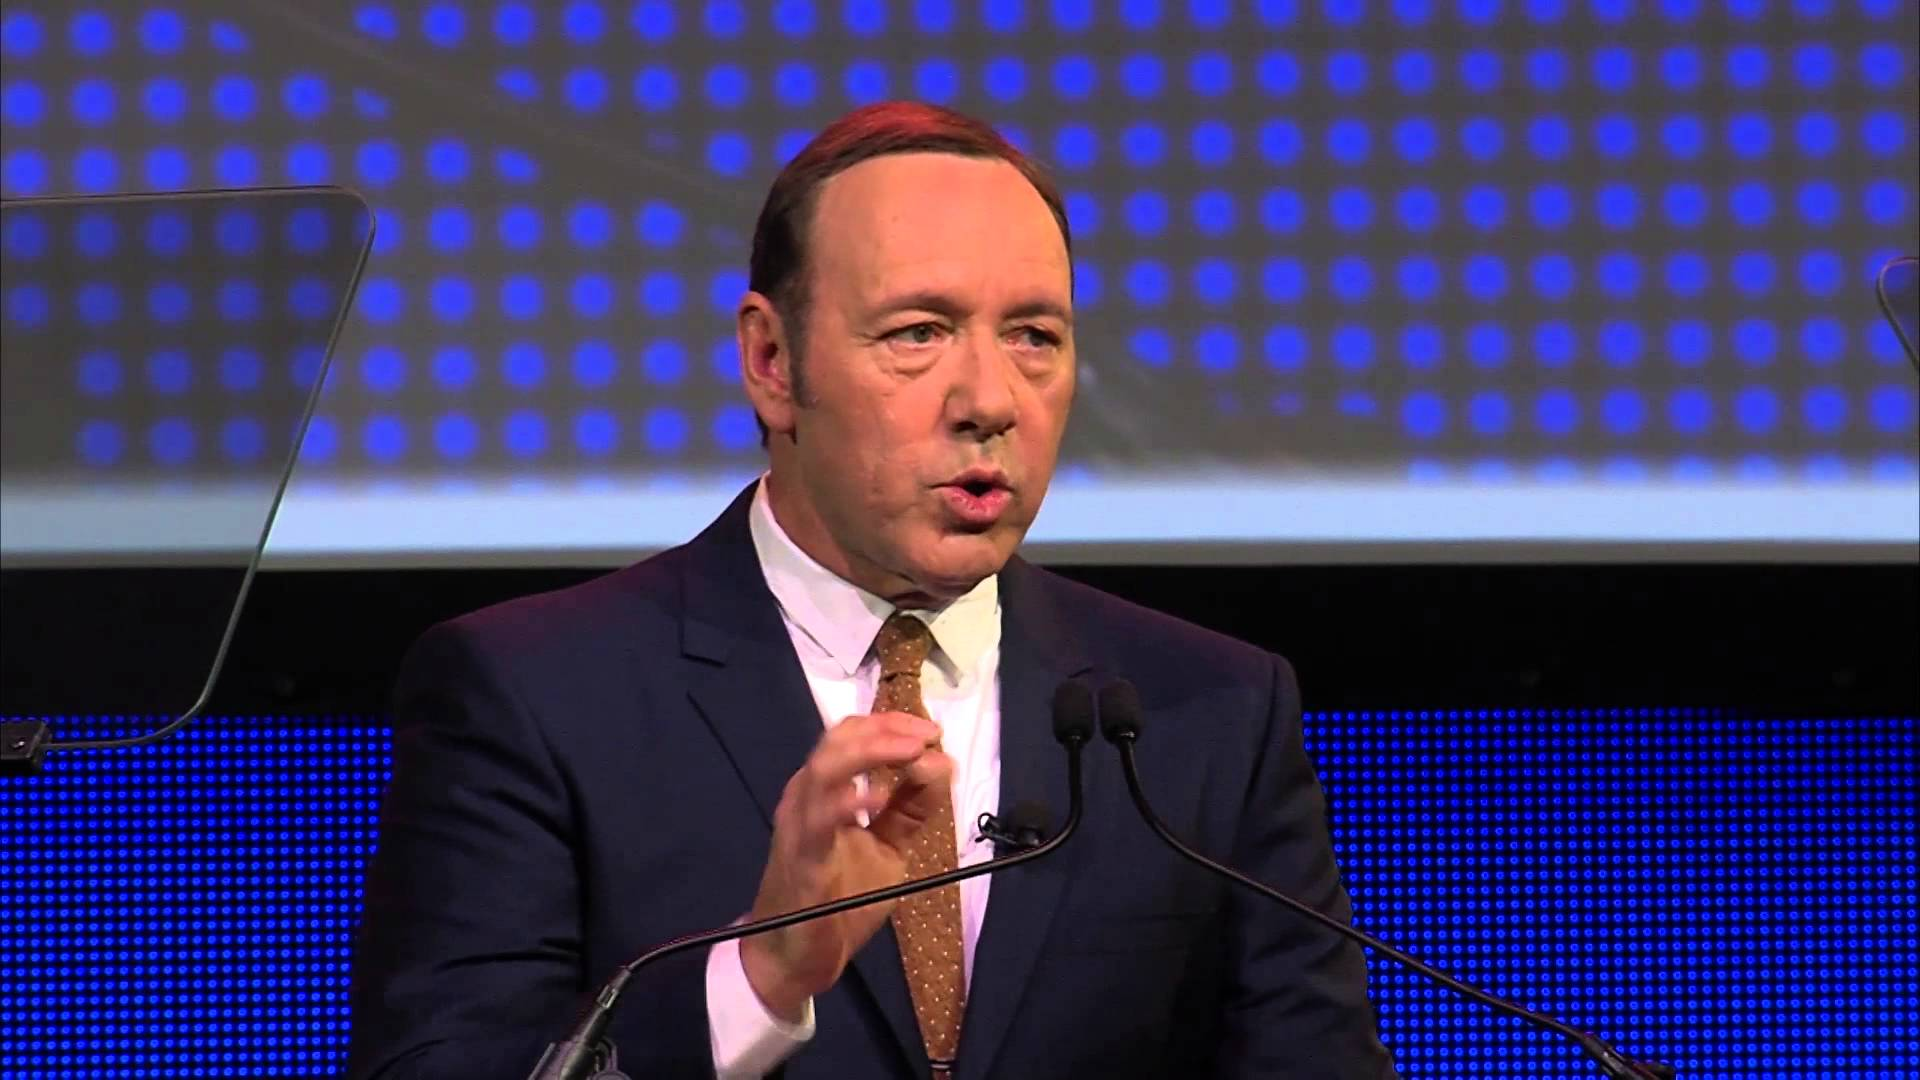 Kevin Spacey explains content marketing in 5 minutes